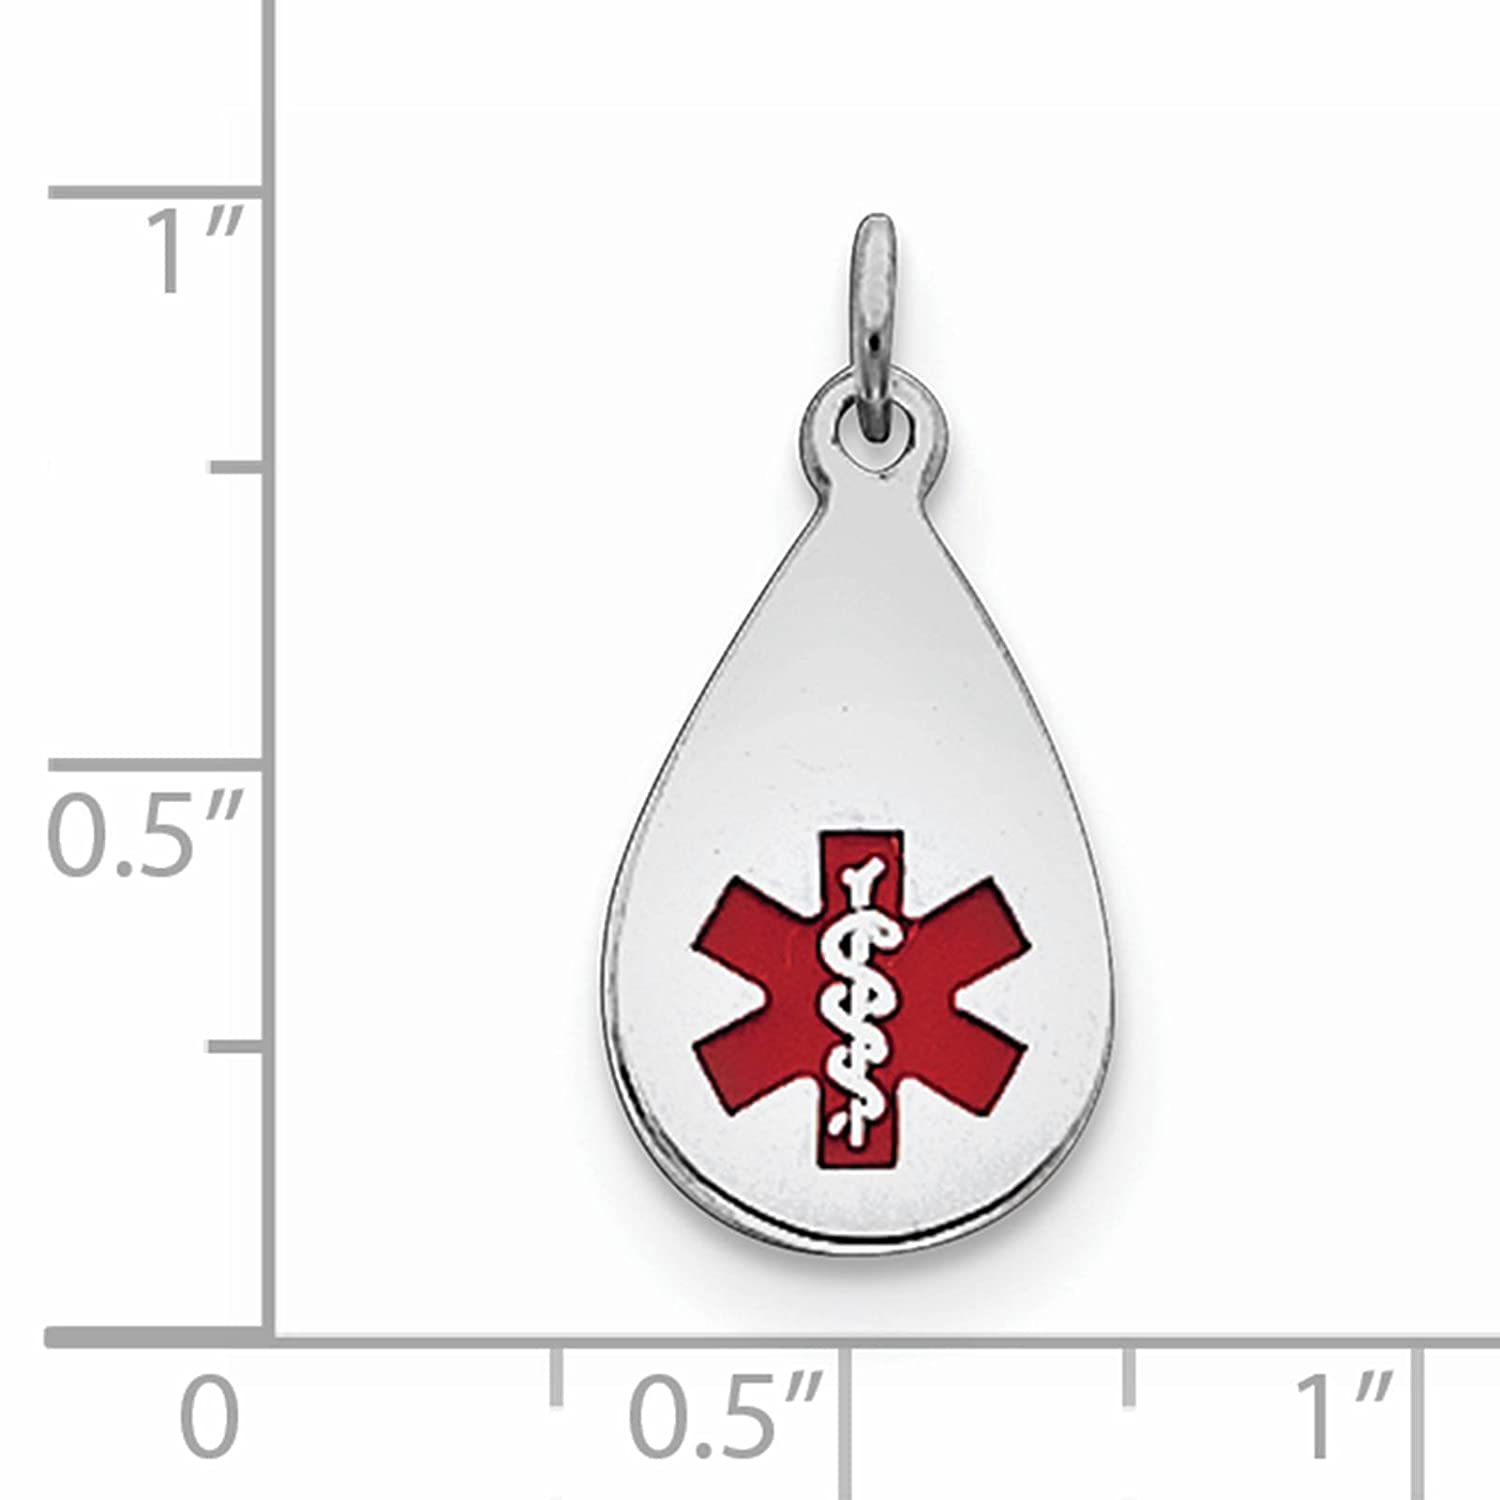 925 Sterling Silver Rhodium-plated Engraveable Enameled Medical Jewelry Pendant